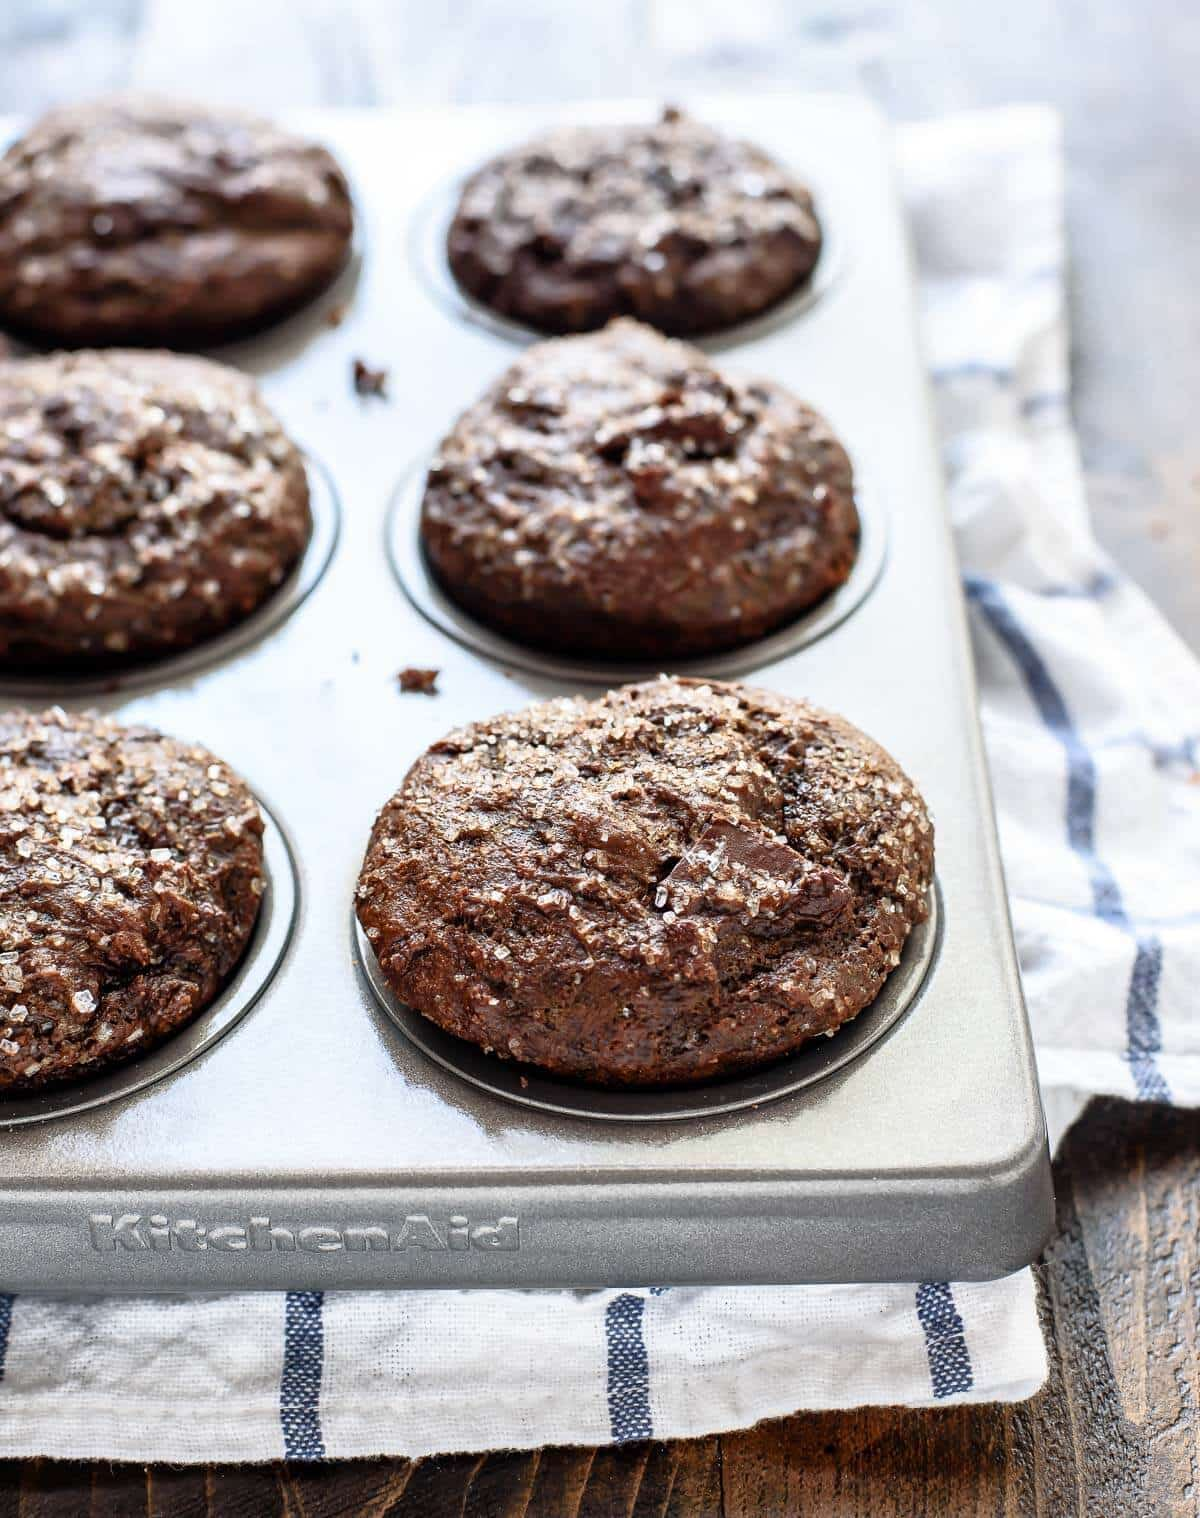 Healthy Chocolate Gingerbread Muffins made with coconut oil, Greek yogurt, and big chunks of dark chocolate. Every bite is filled with holiday spices!